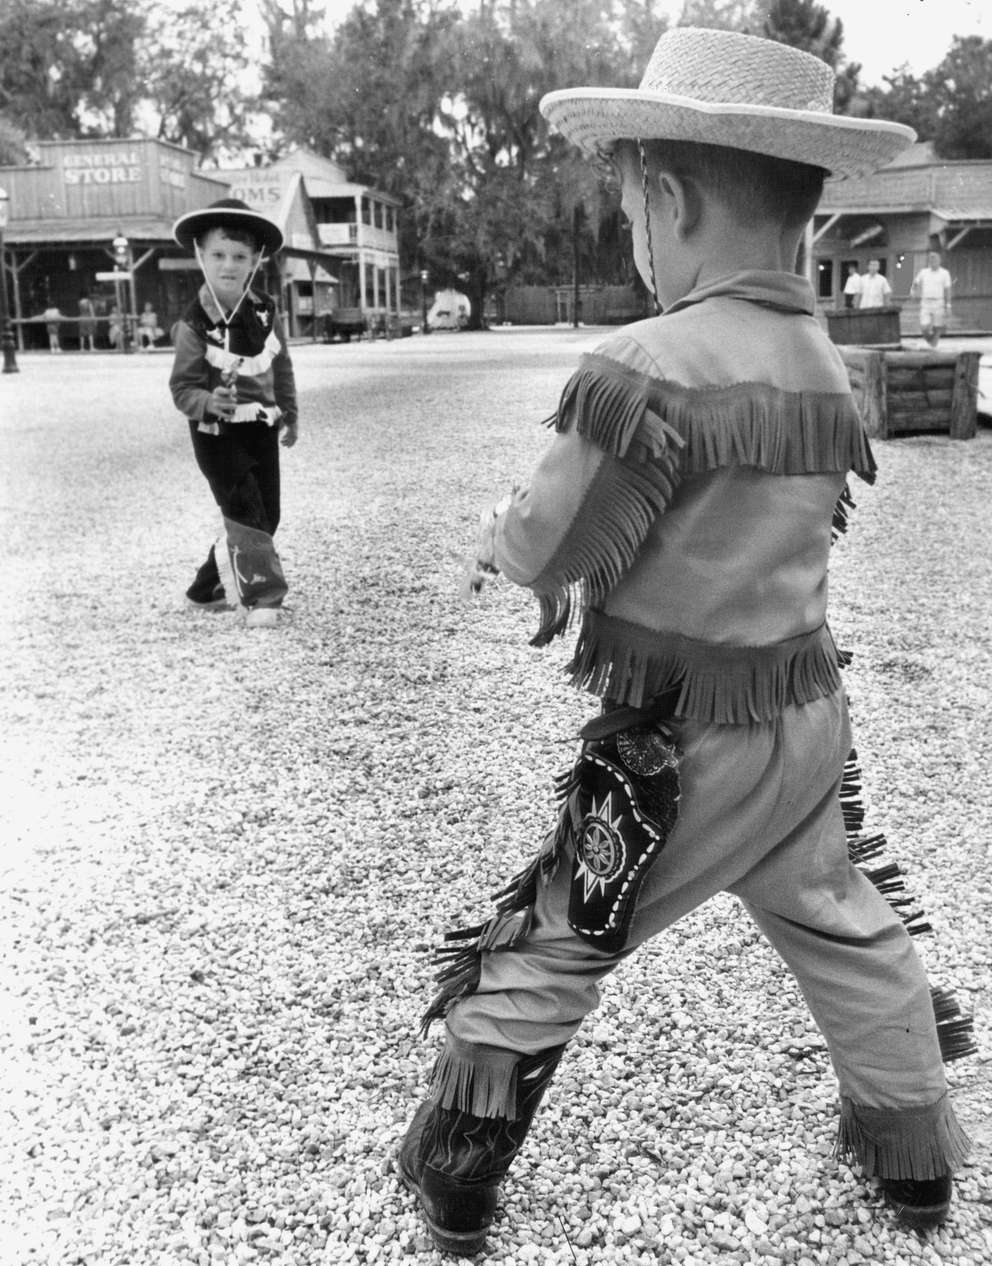 Costumes and shootouts were regular occurrences at the Six Gun Territory attraction. Times (1964)